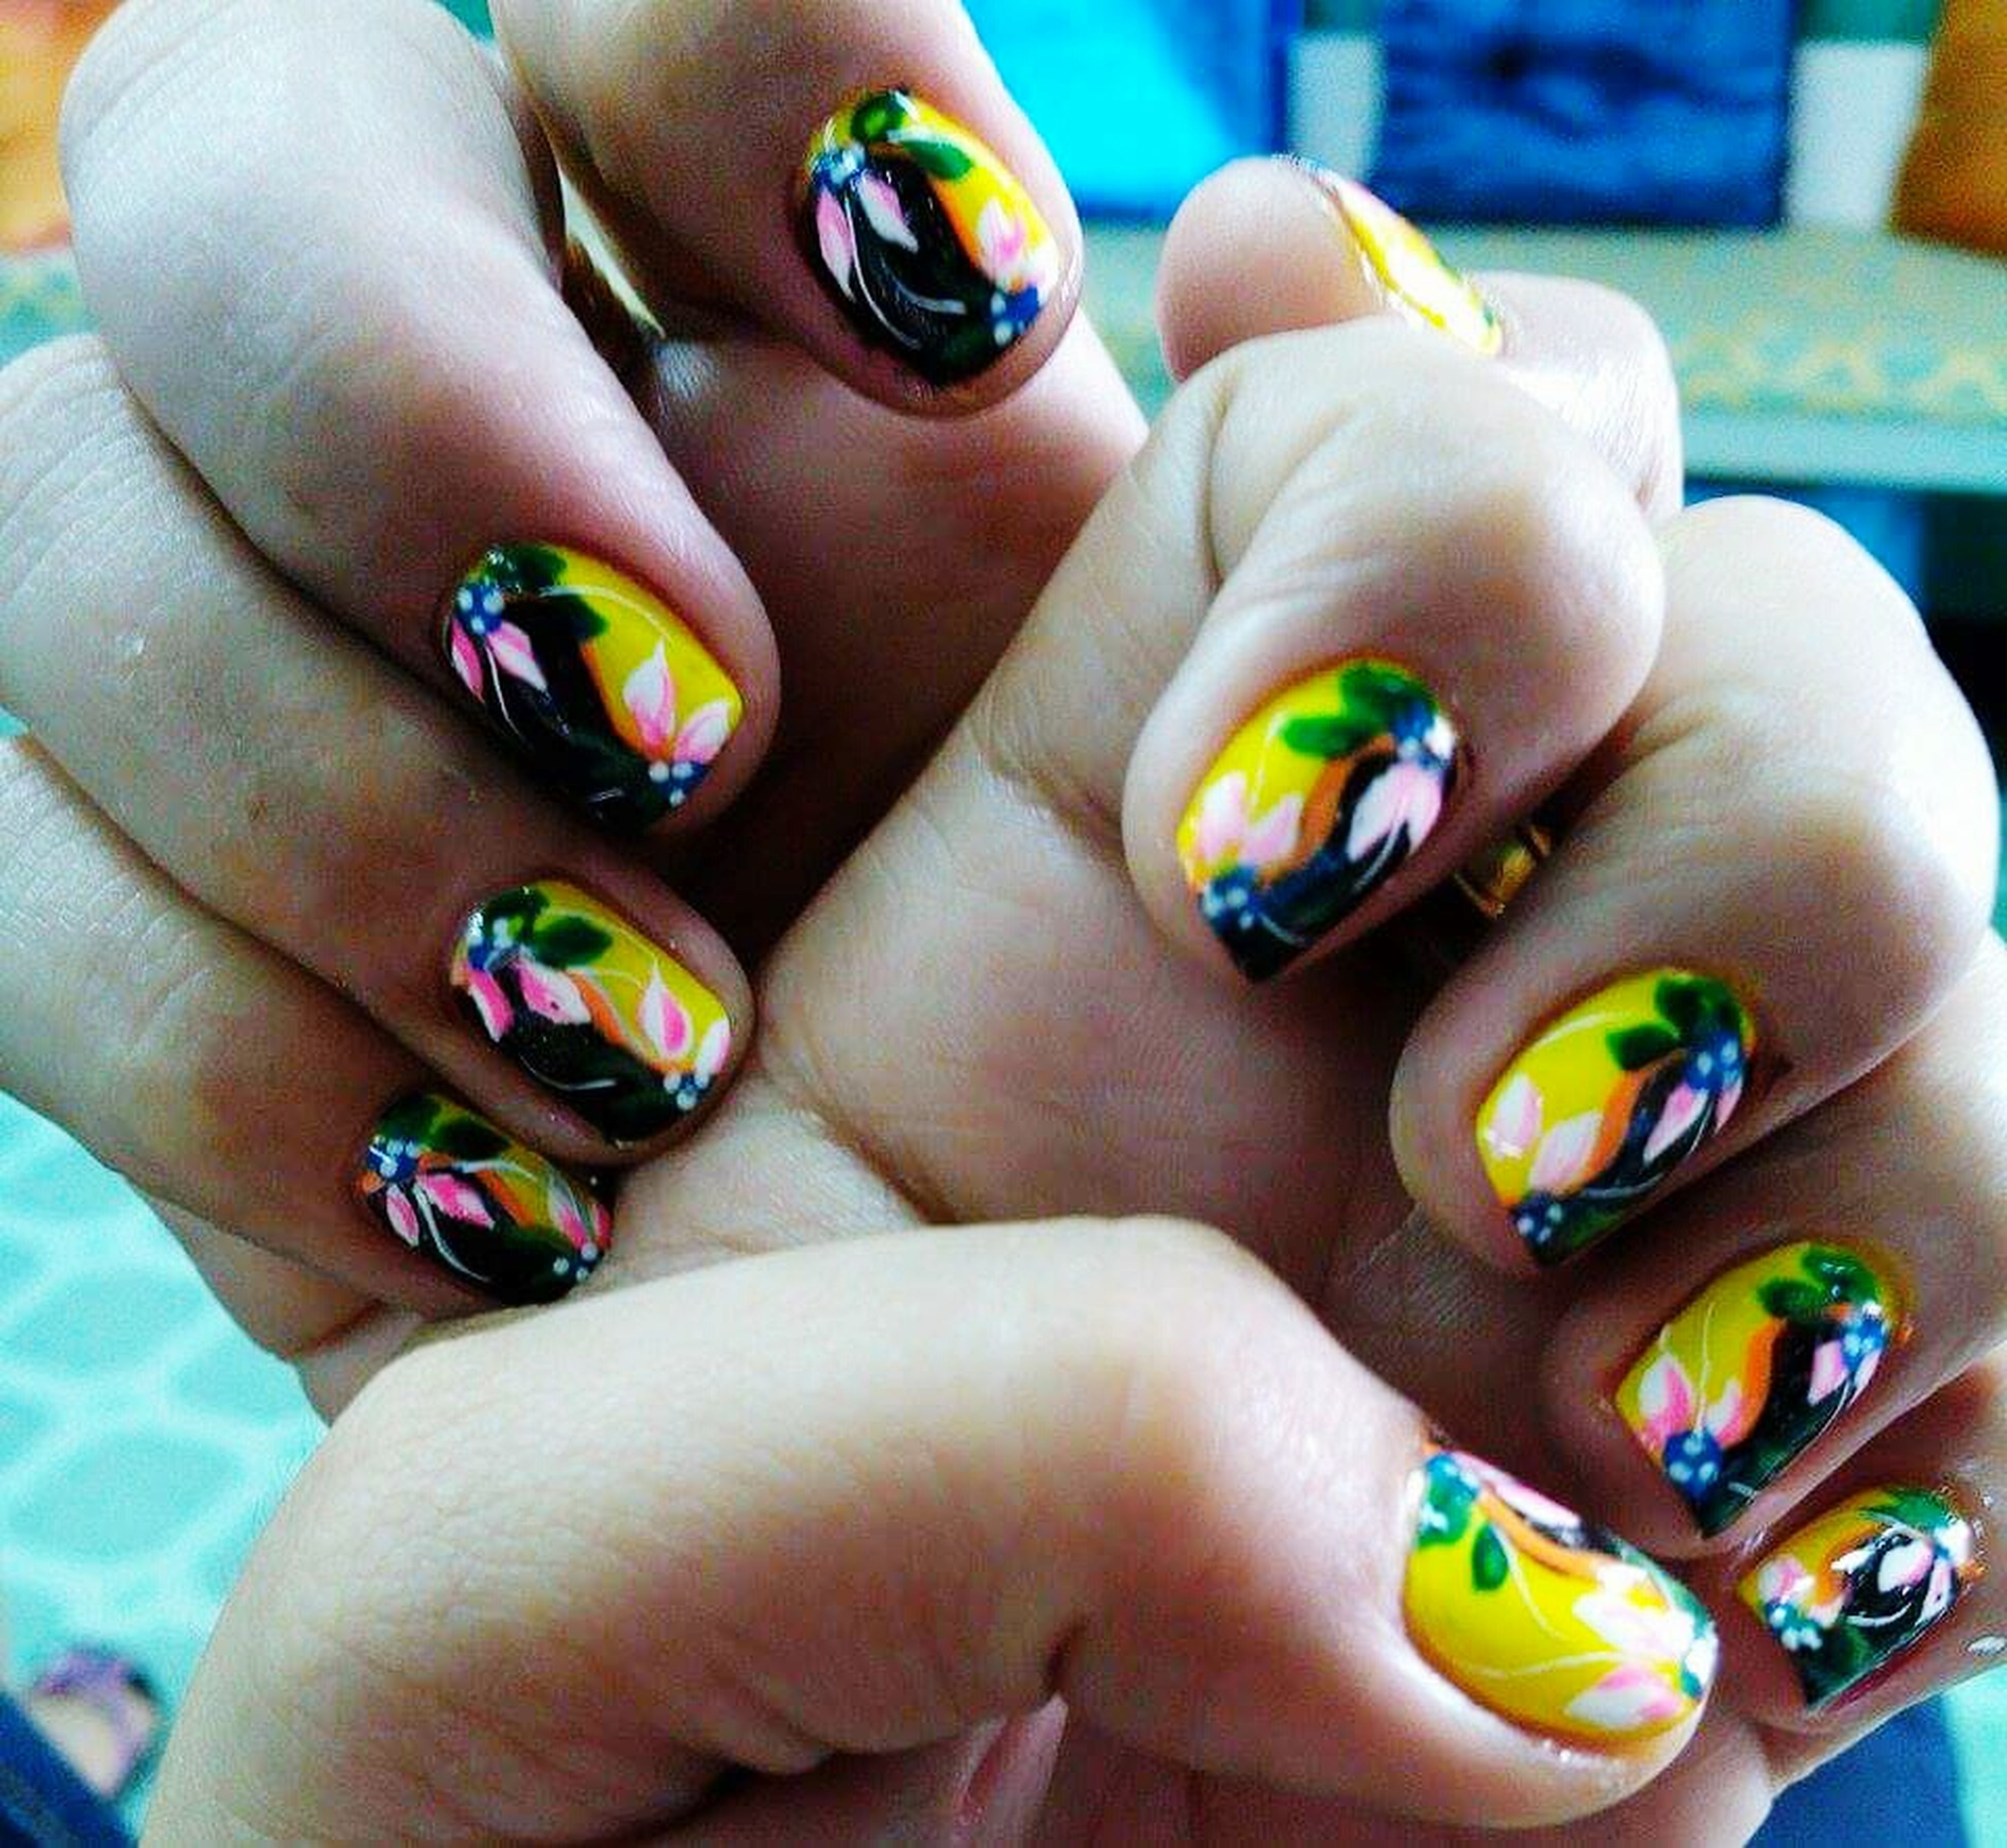 person, part of, holding, human finger, cropped, lifestyles, unrecognizable person, leisure activity, multi colored, close-up, showing, focus on foreground, personal perspective, high angle view, toy, nail polish